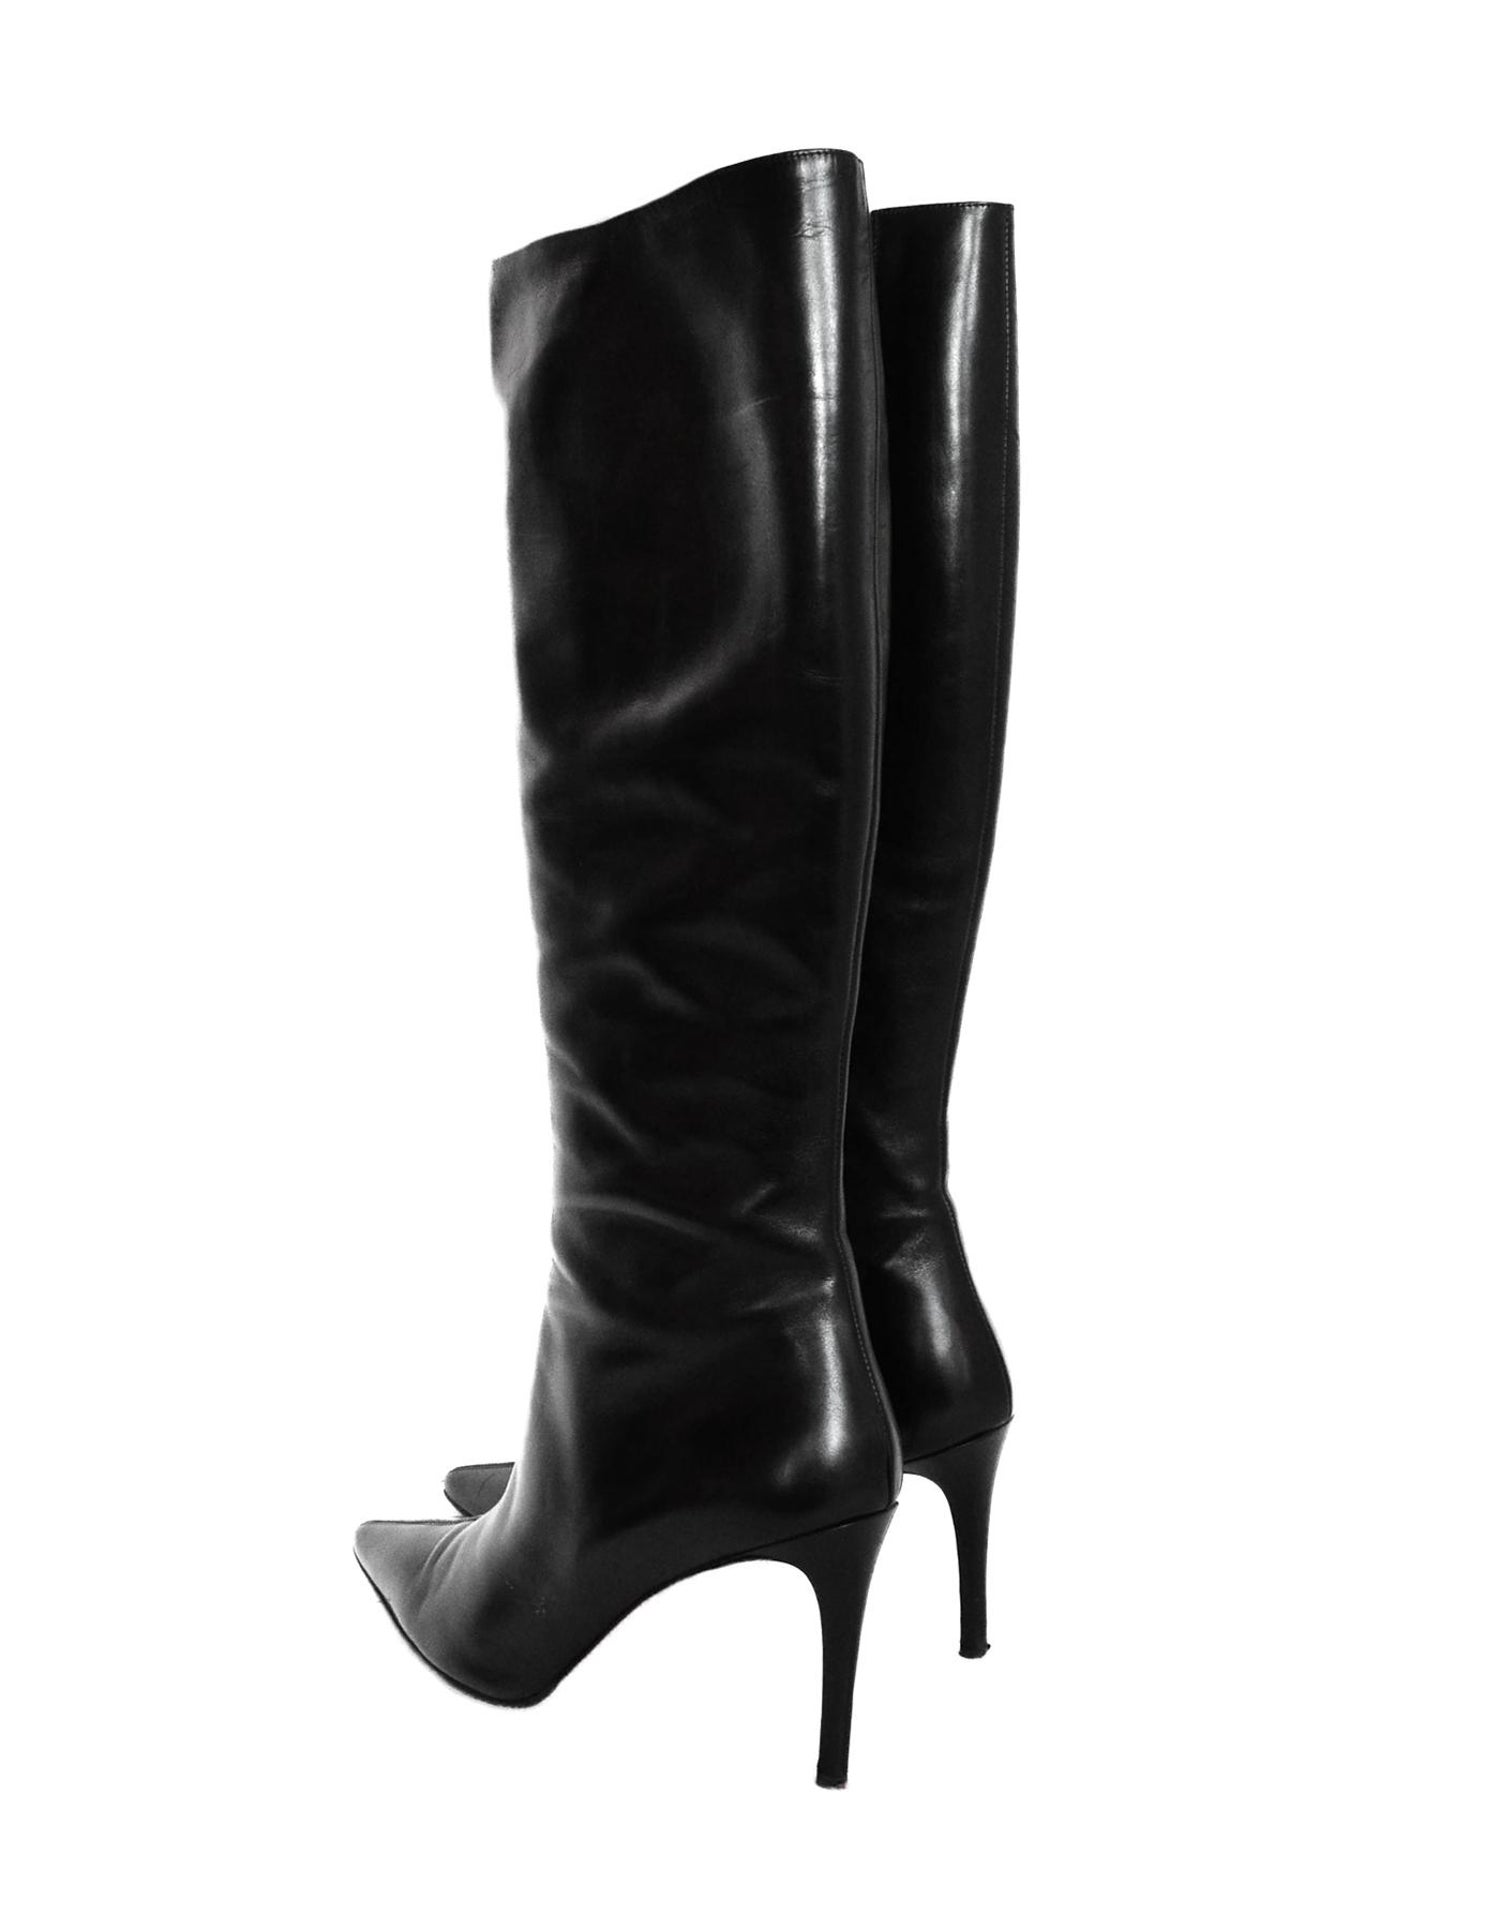 efdcf21f9f63 Christian Louboutin Black Leather Point Toe Boots Sz 40 For Sale at 1stdibs